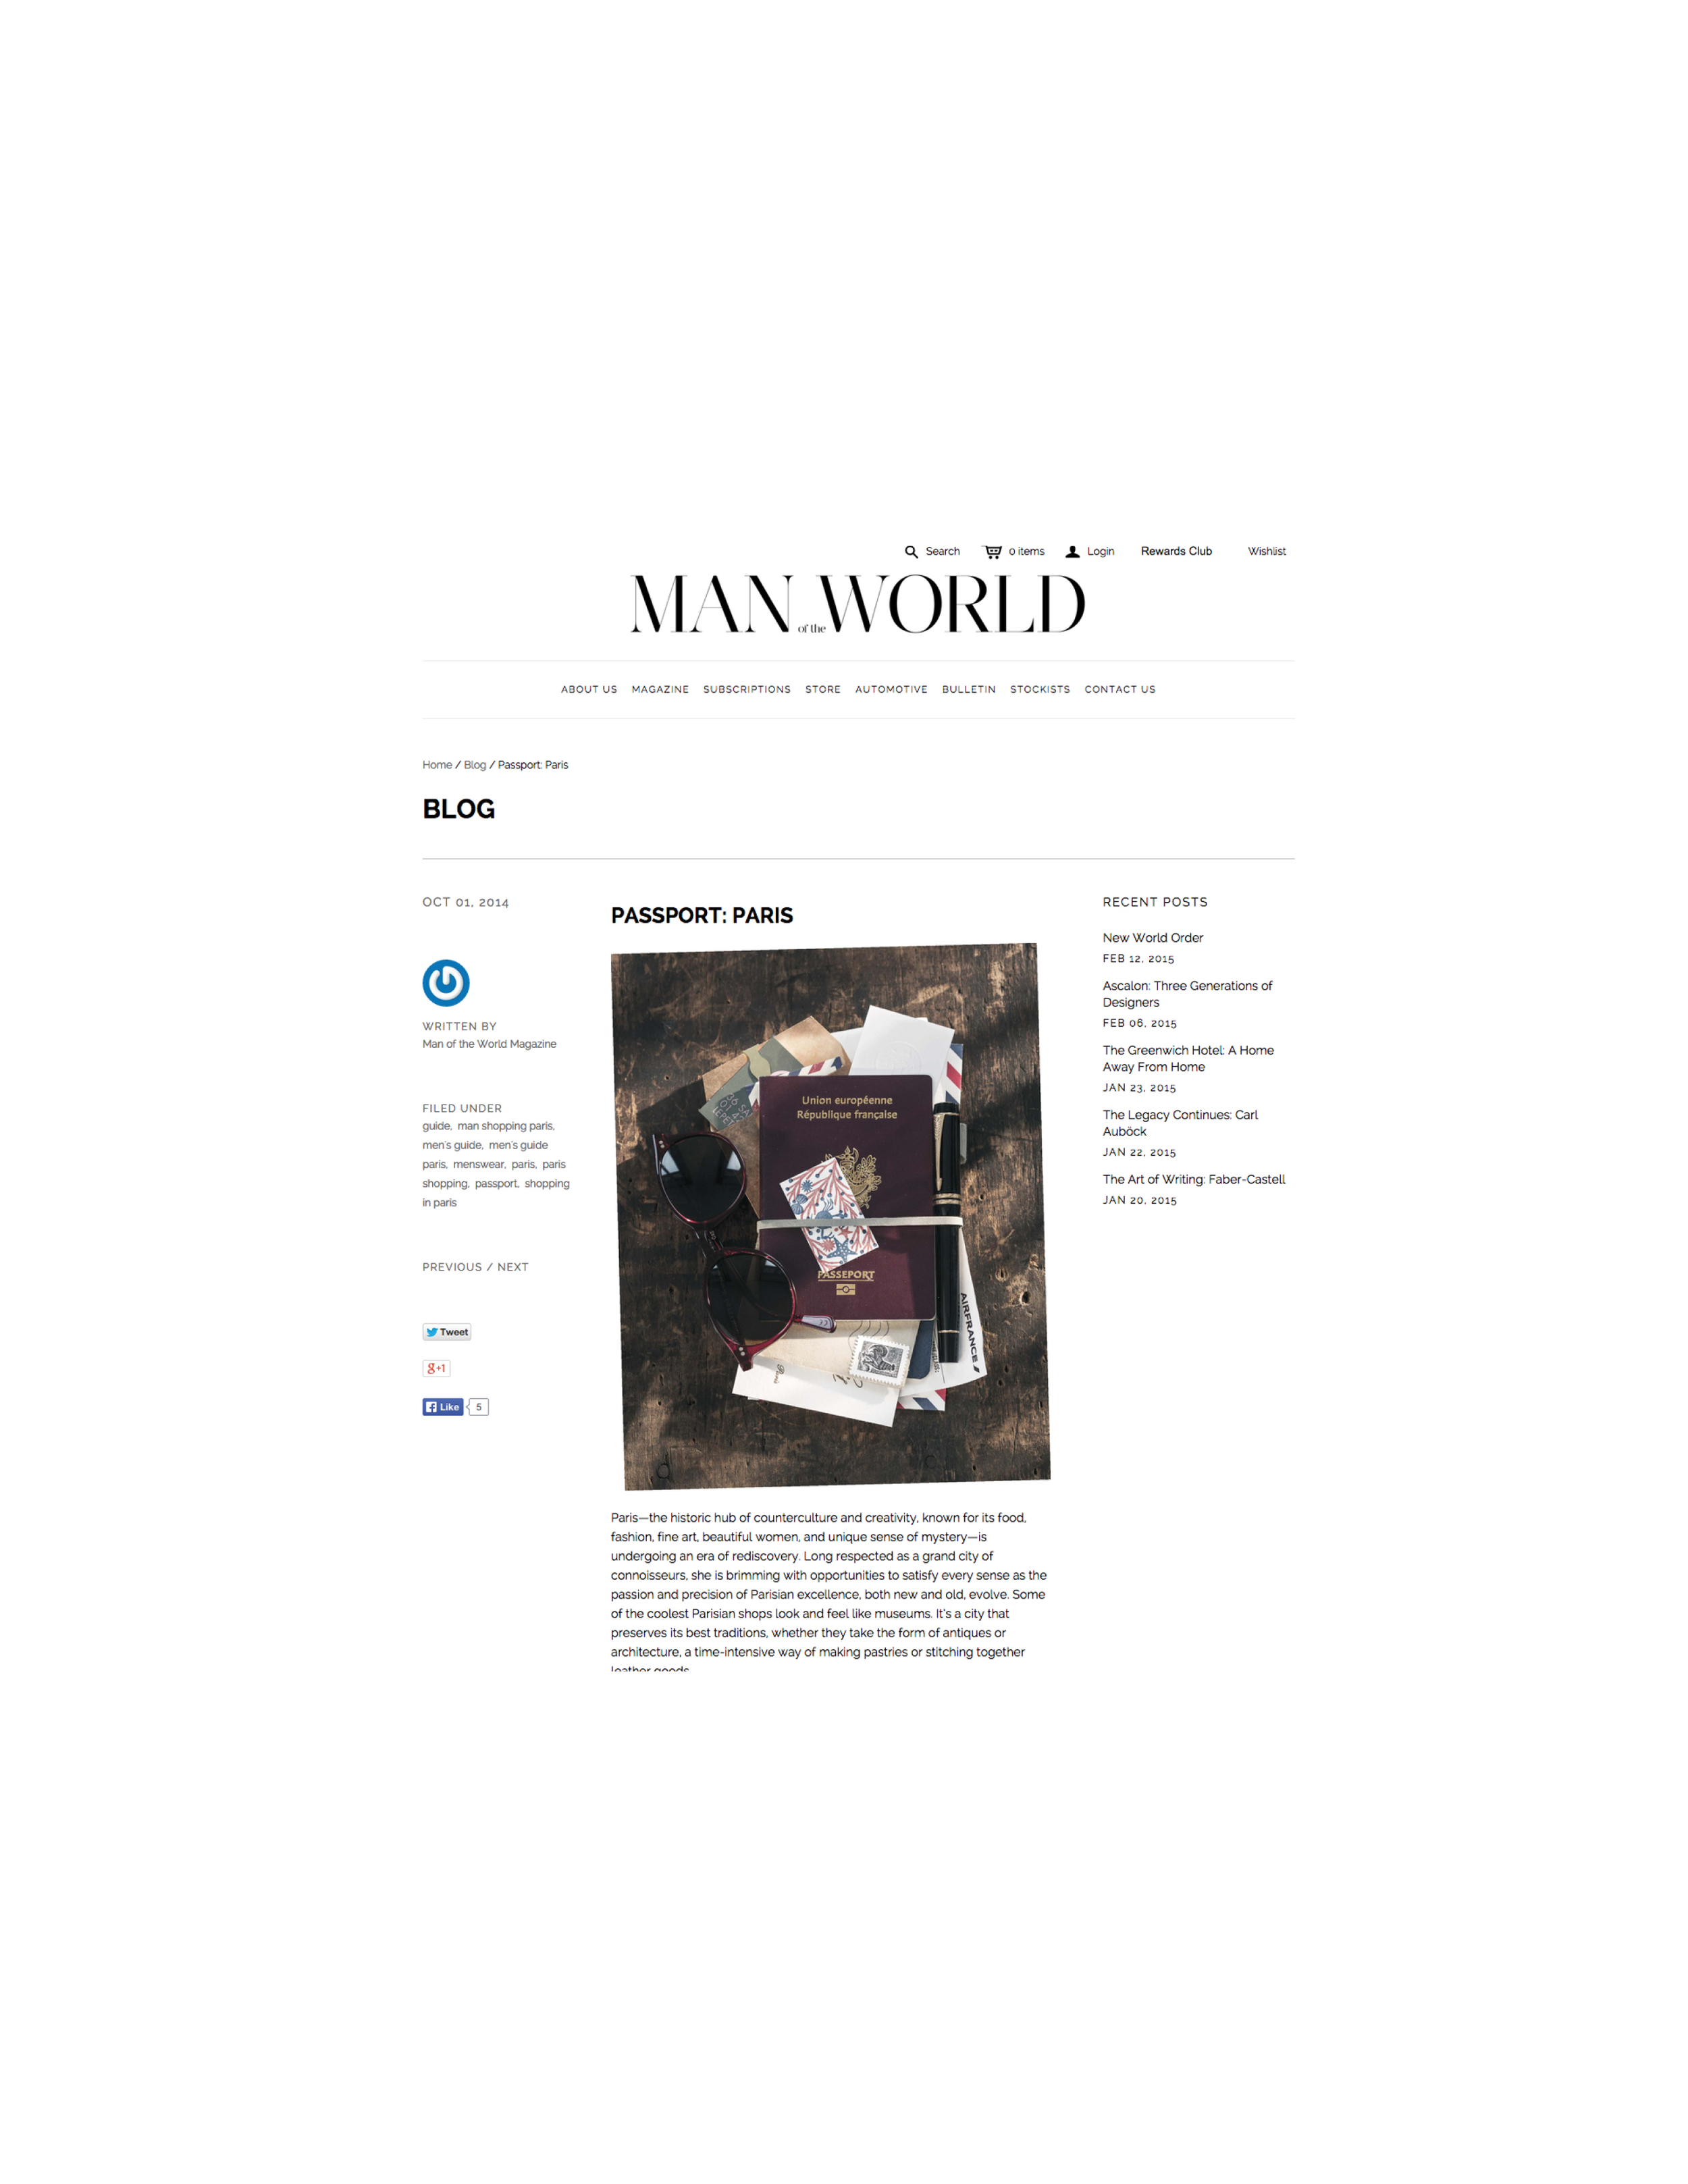 Man of the World   Passport: Paris